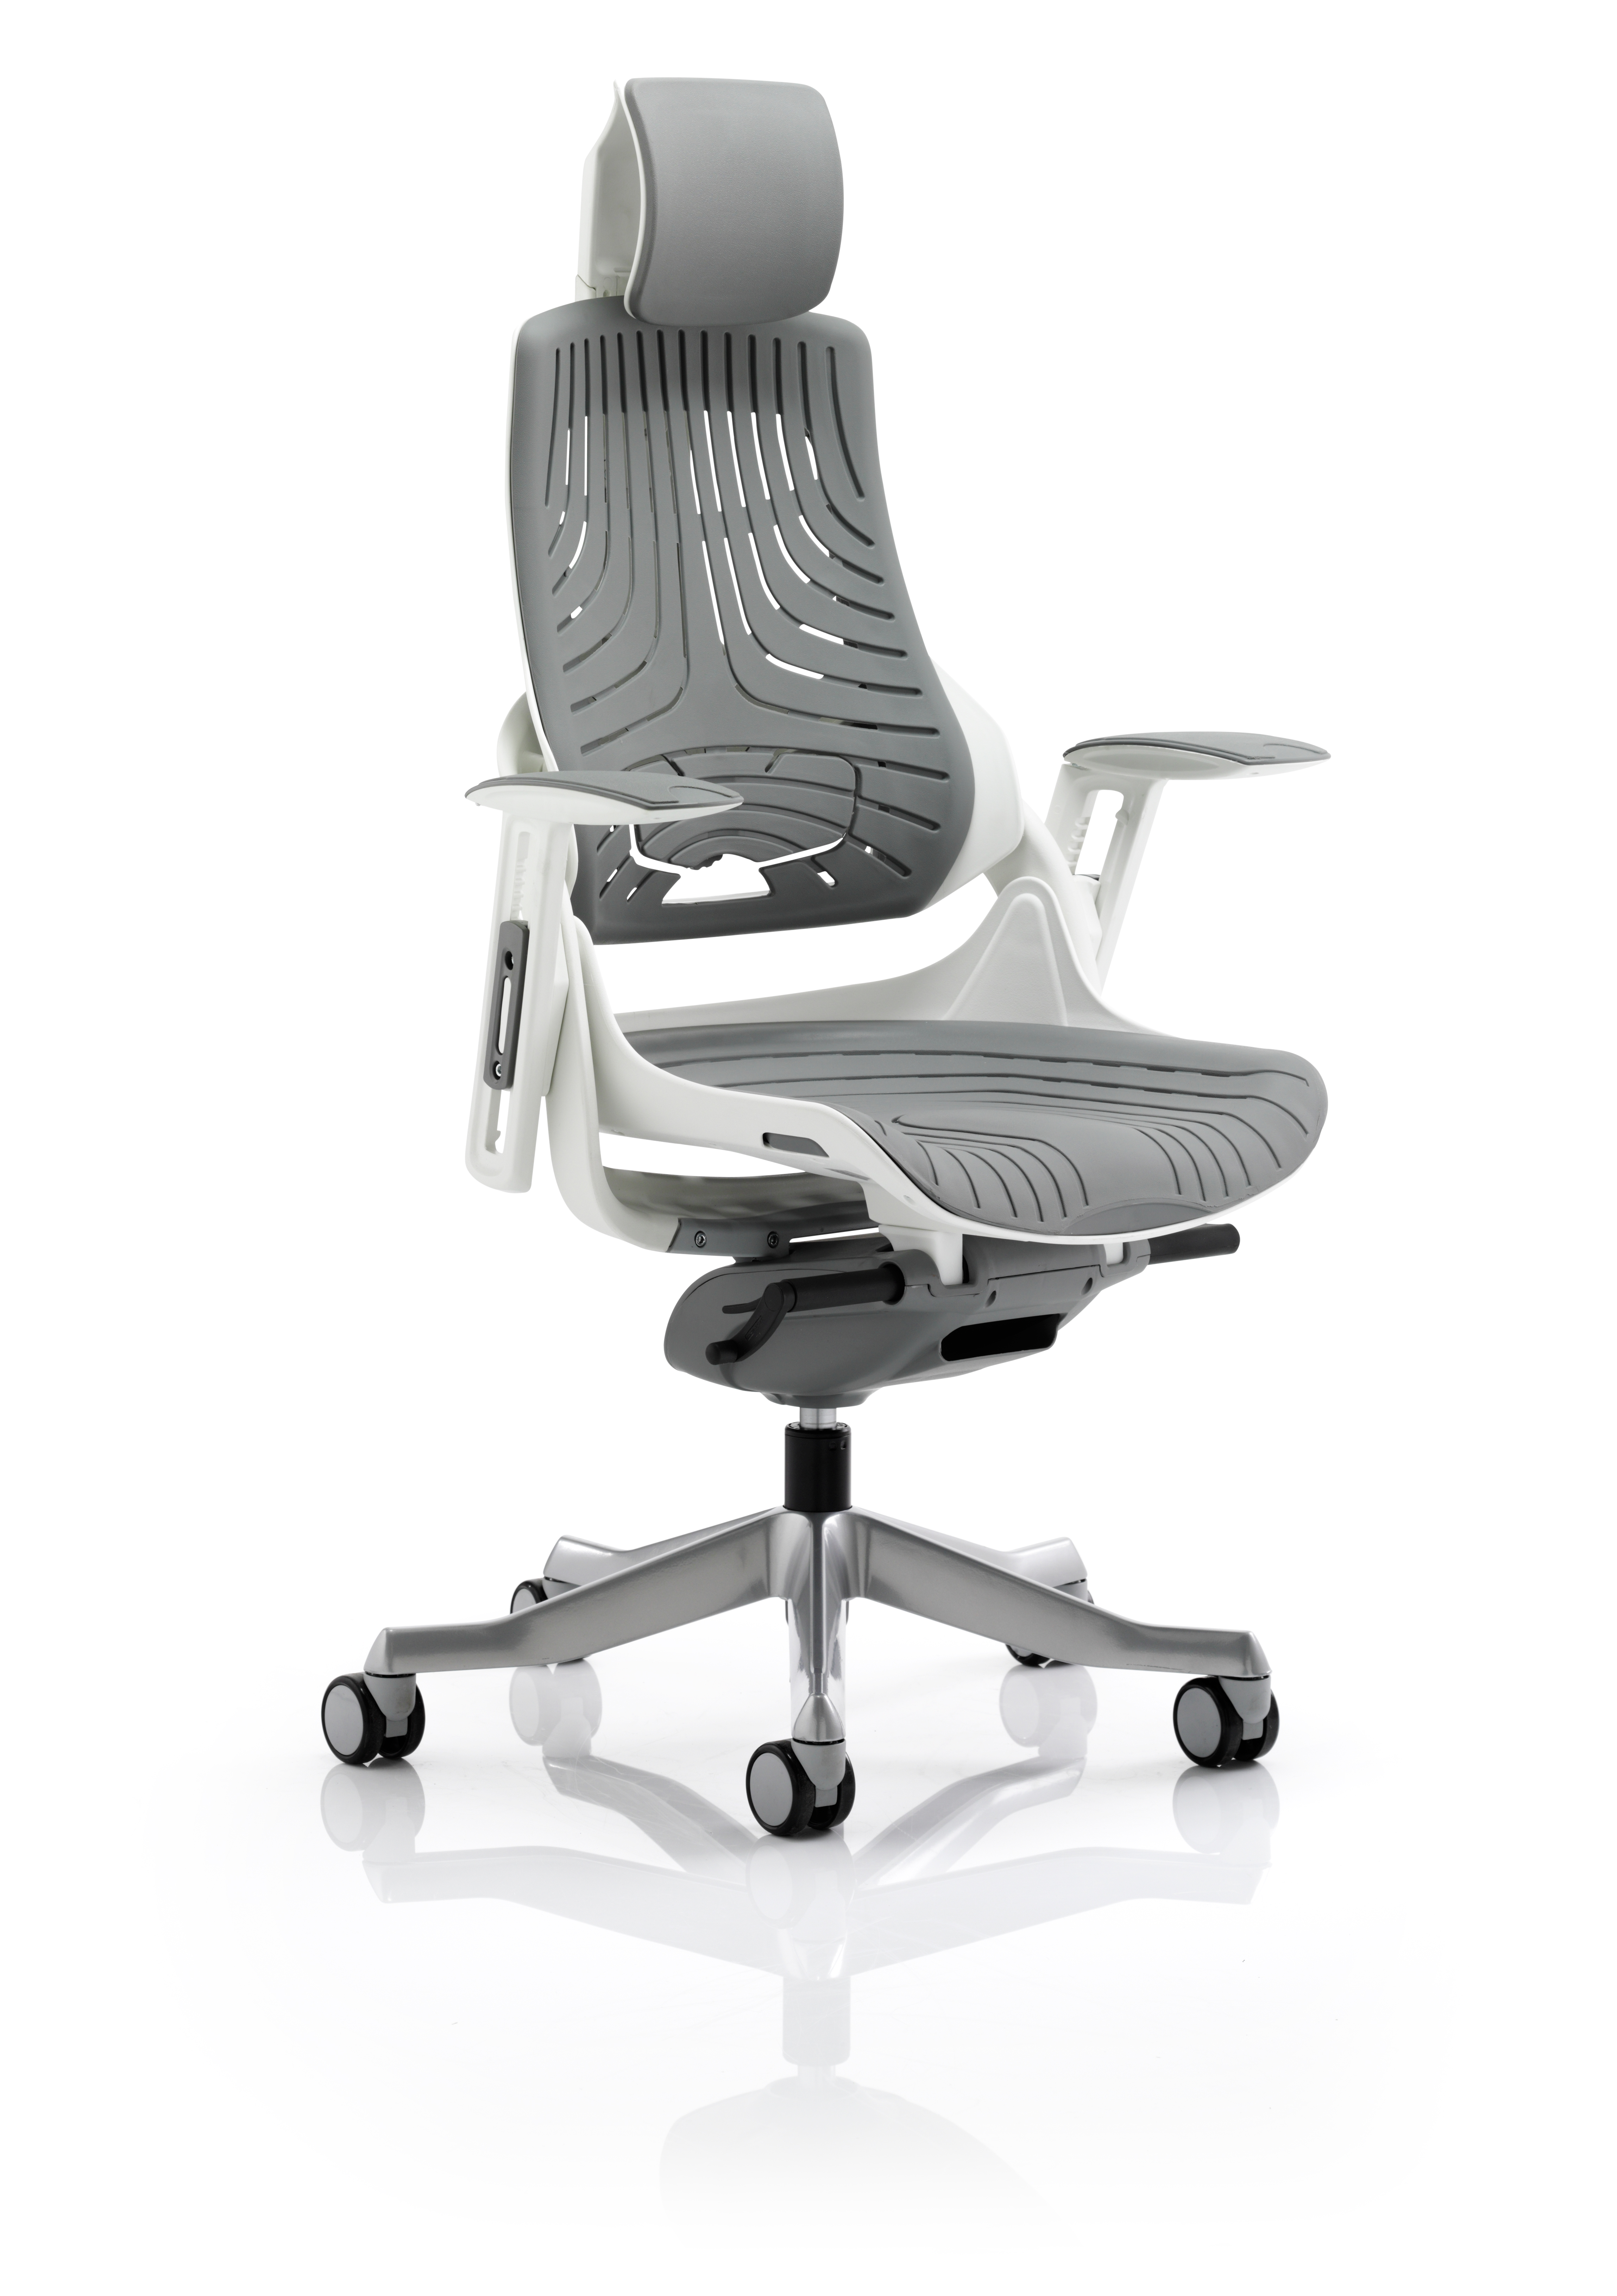 Executive Chairs Zure Elastomer Gel Grey With Arms With Headrest KC0164